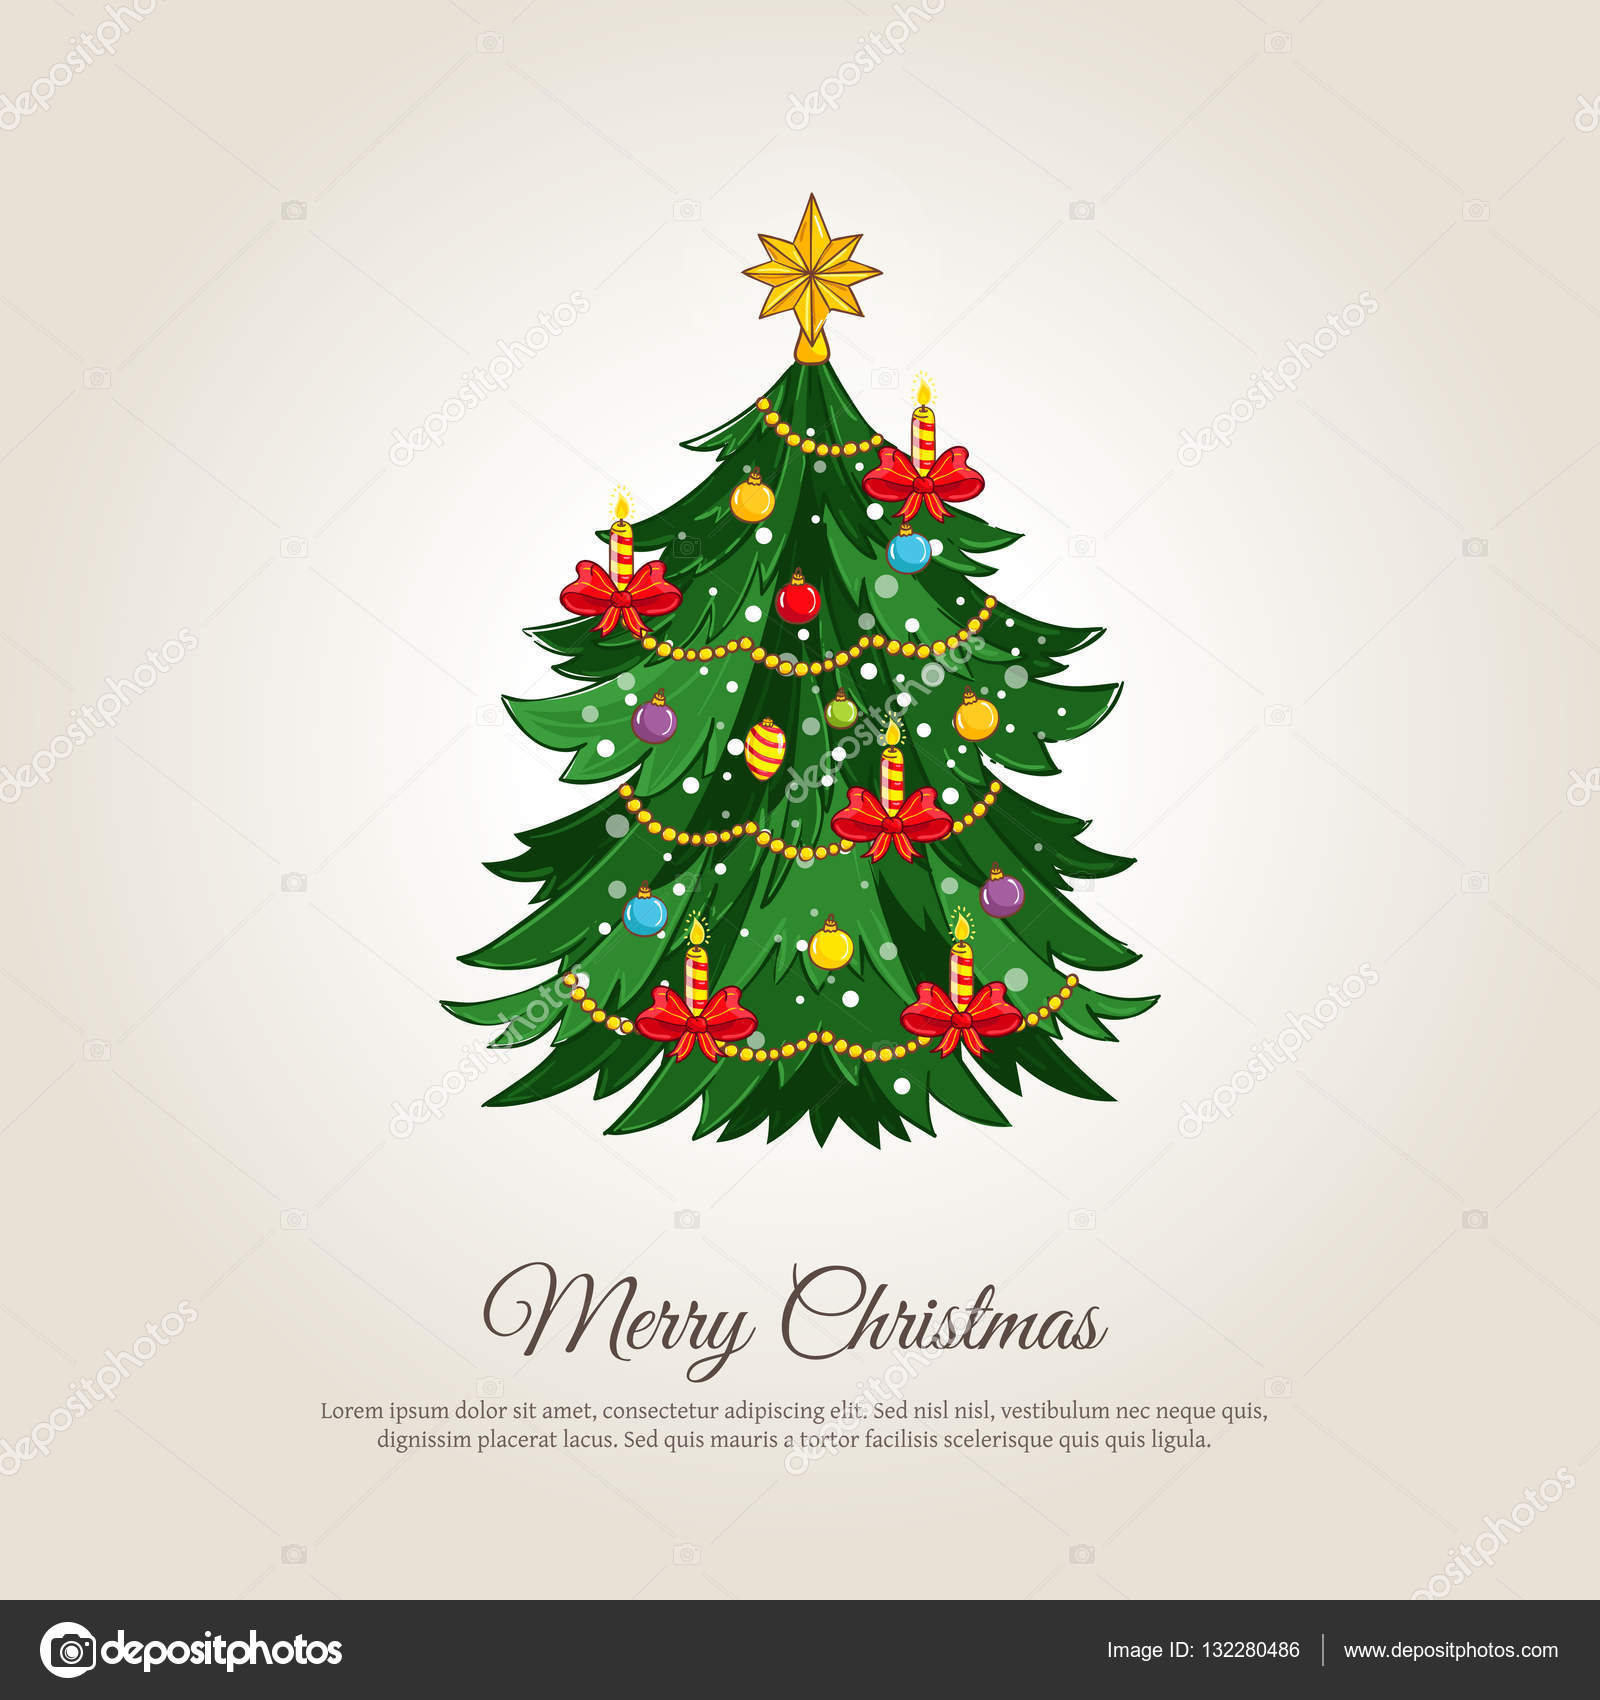 Christmas Banner.Merry Christmas Banner With Decorated Xmas Tree Stock